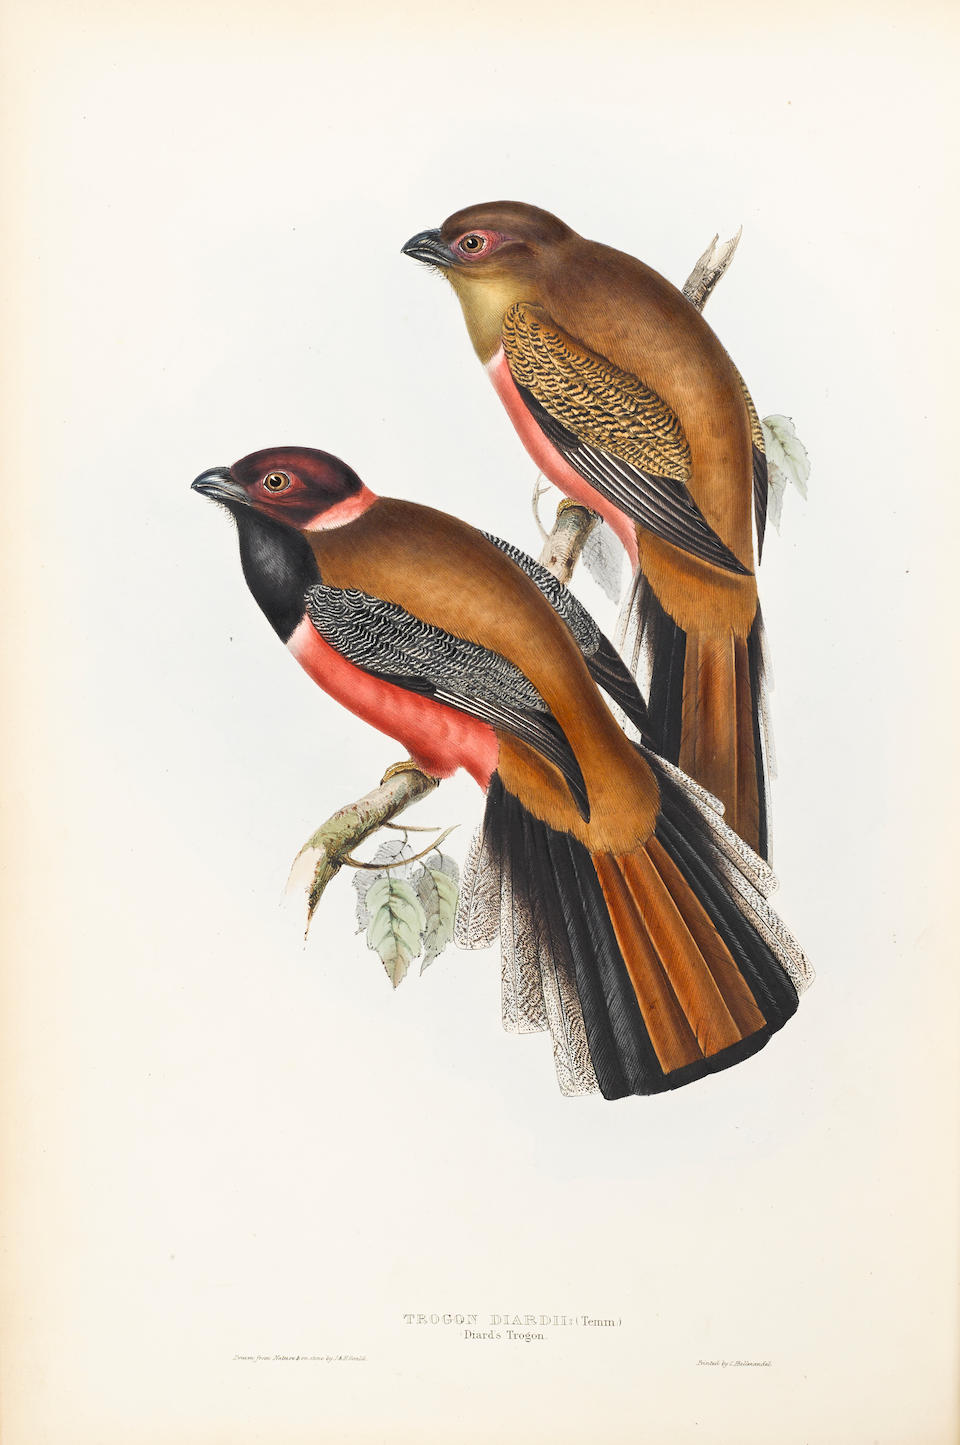 GOULD, JOHN. 1804-1881. A Monograph of the Trogonidae, or Family of Trogons.  London: the author, [1836]-38.